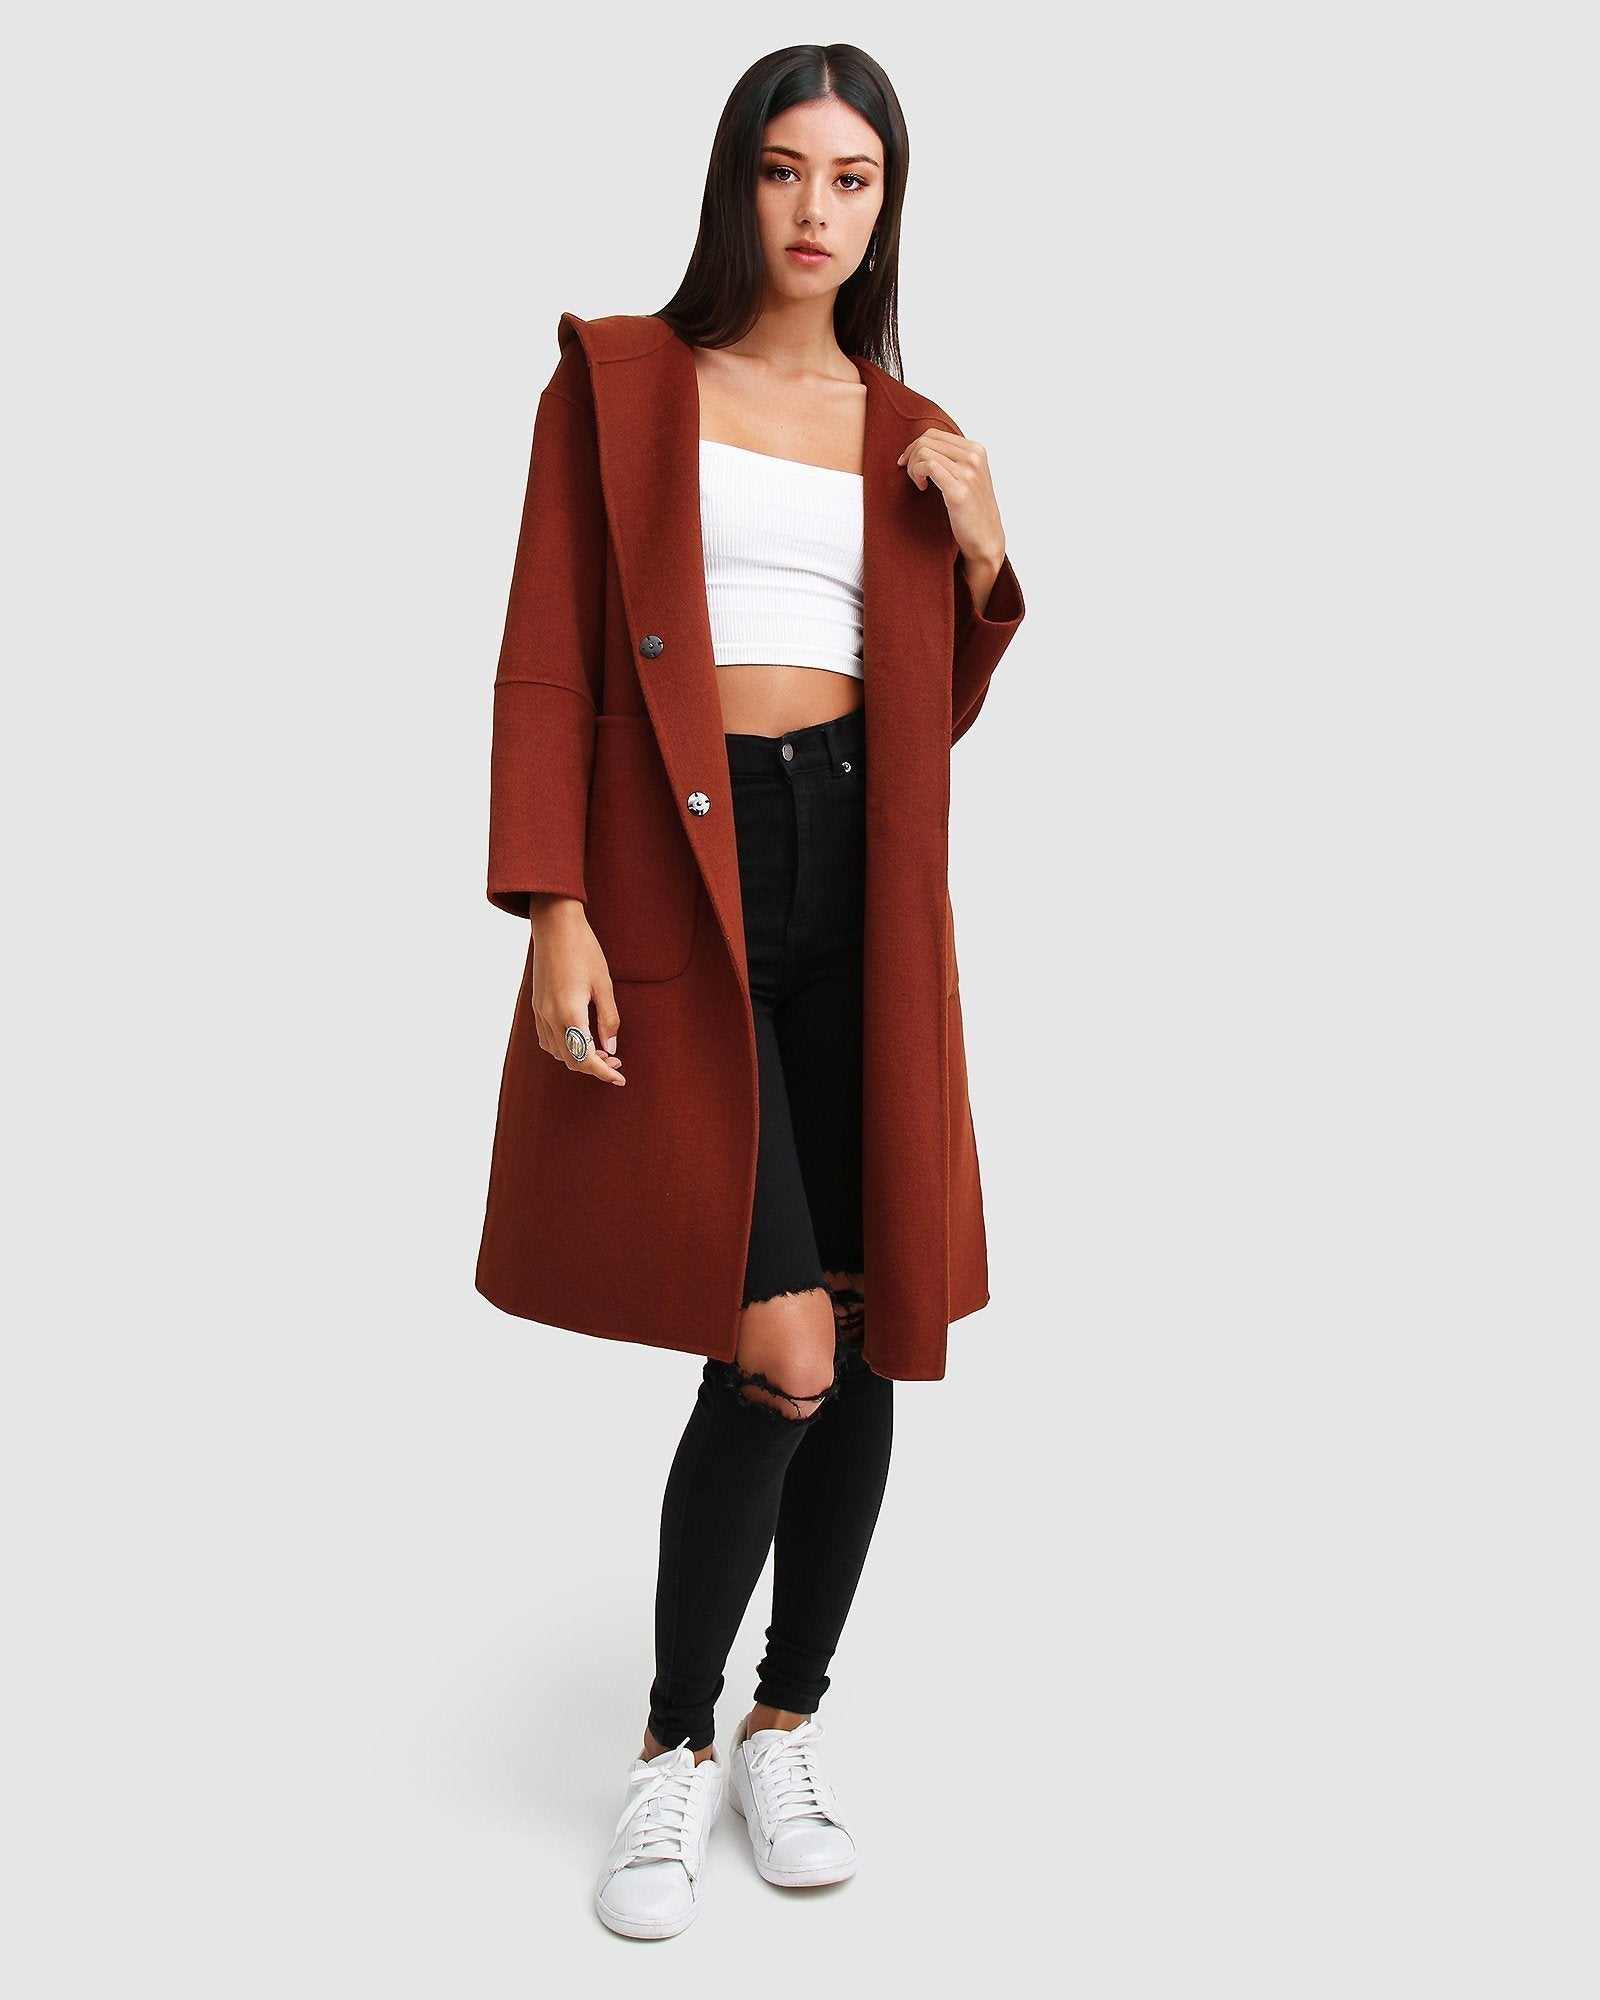 Walk This Way Wool Blend Oversized Coat - Caramel